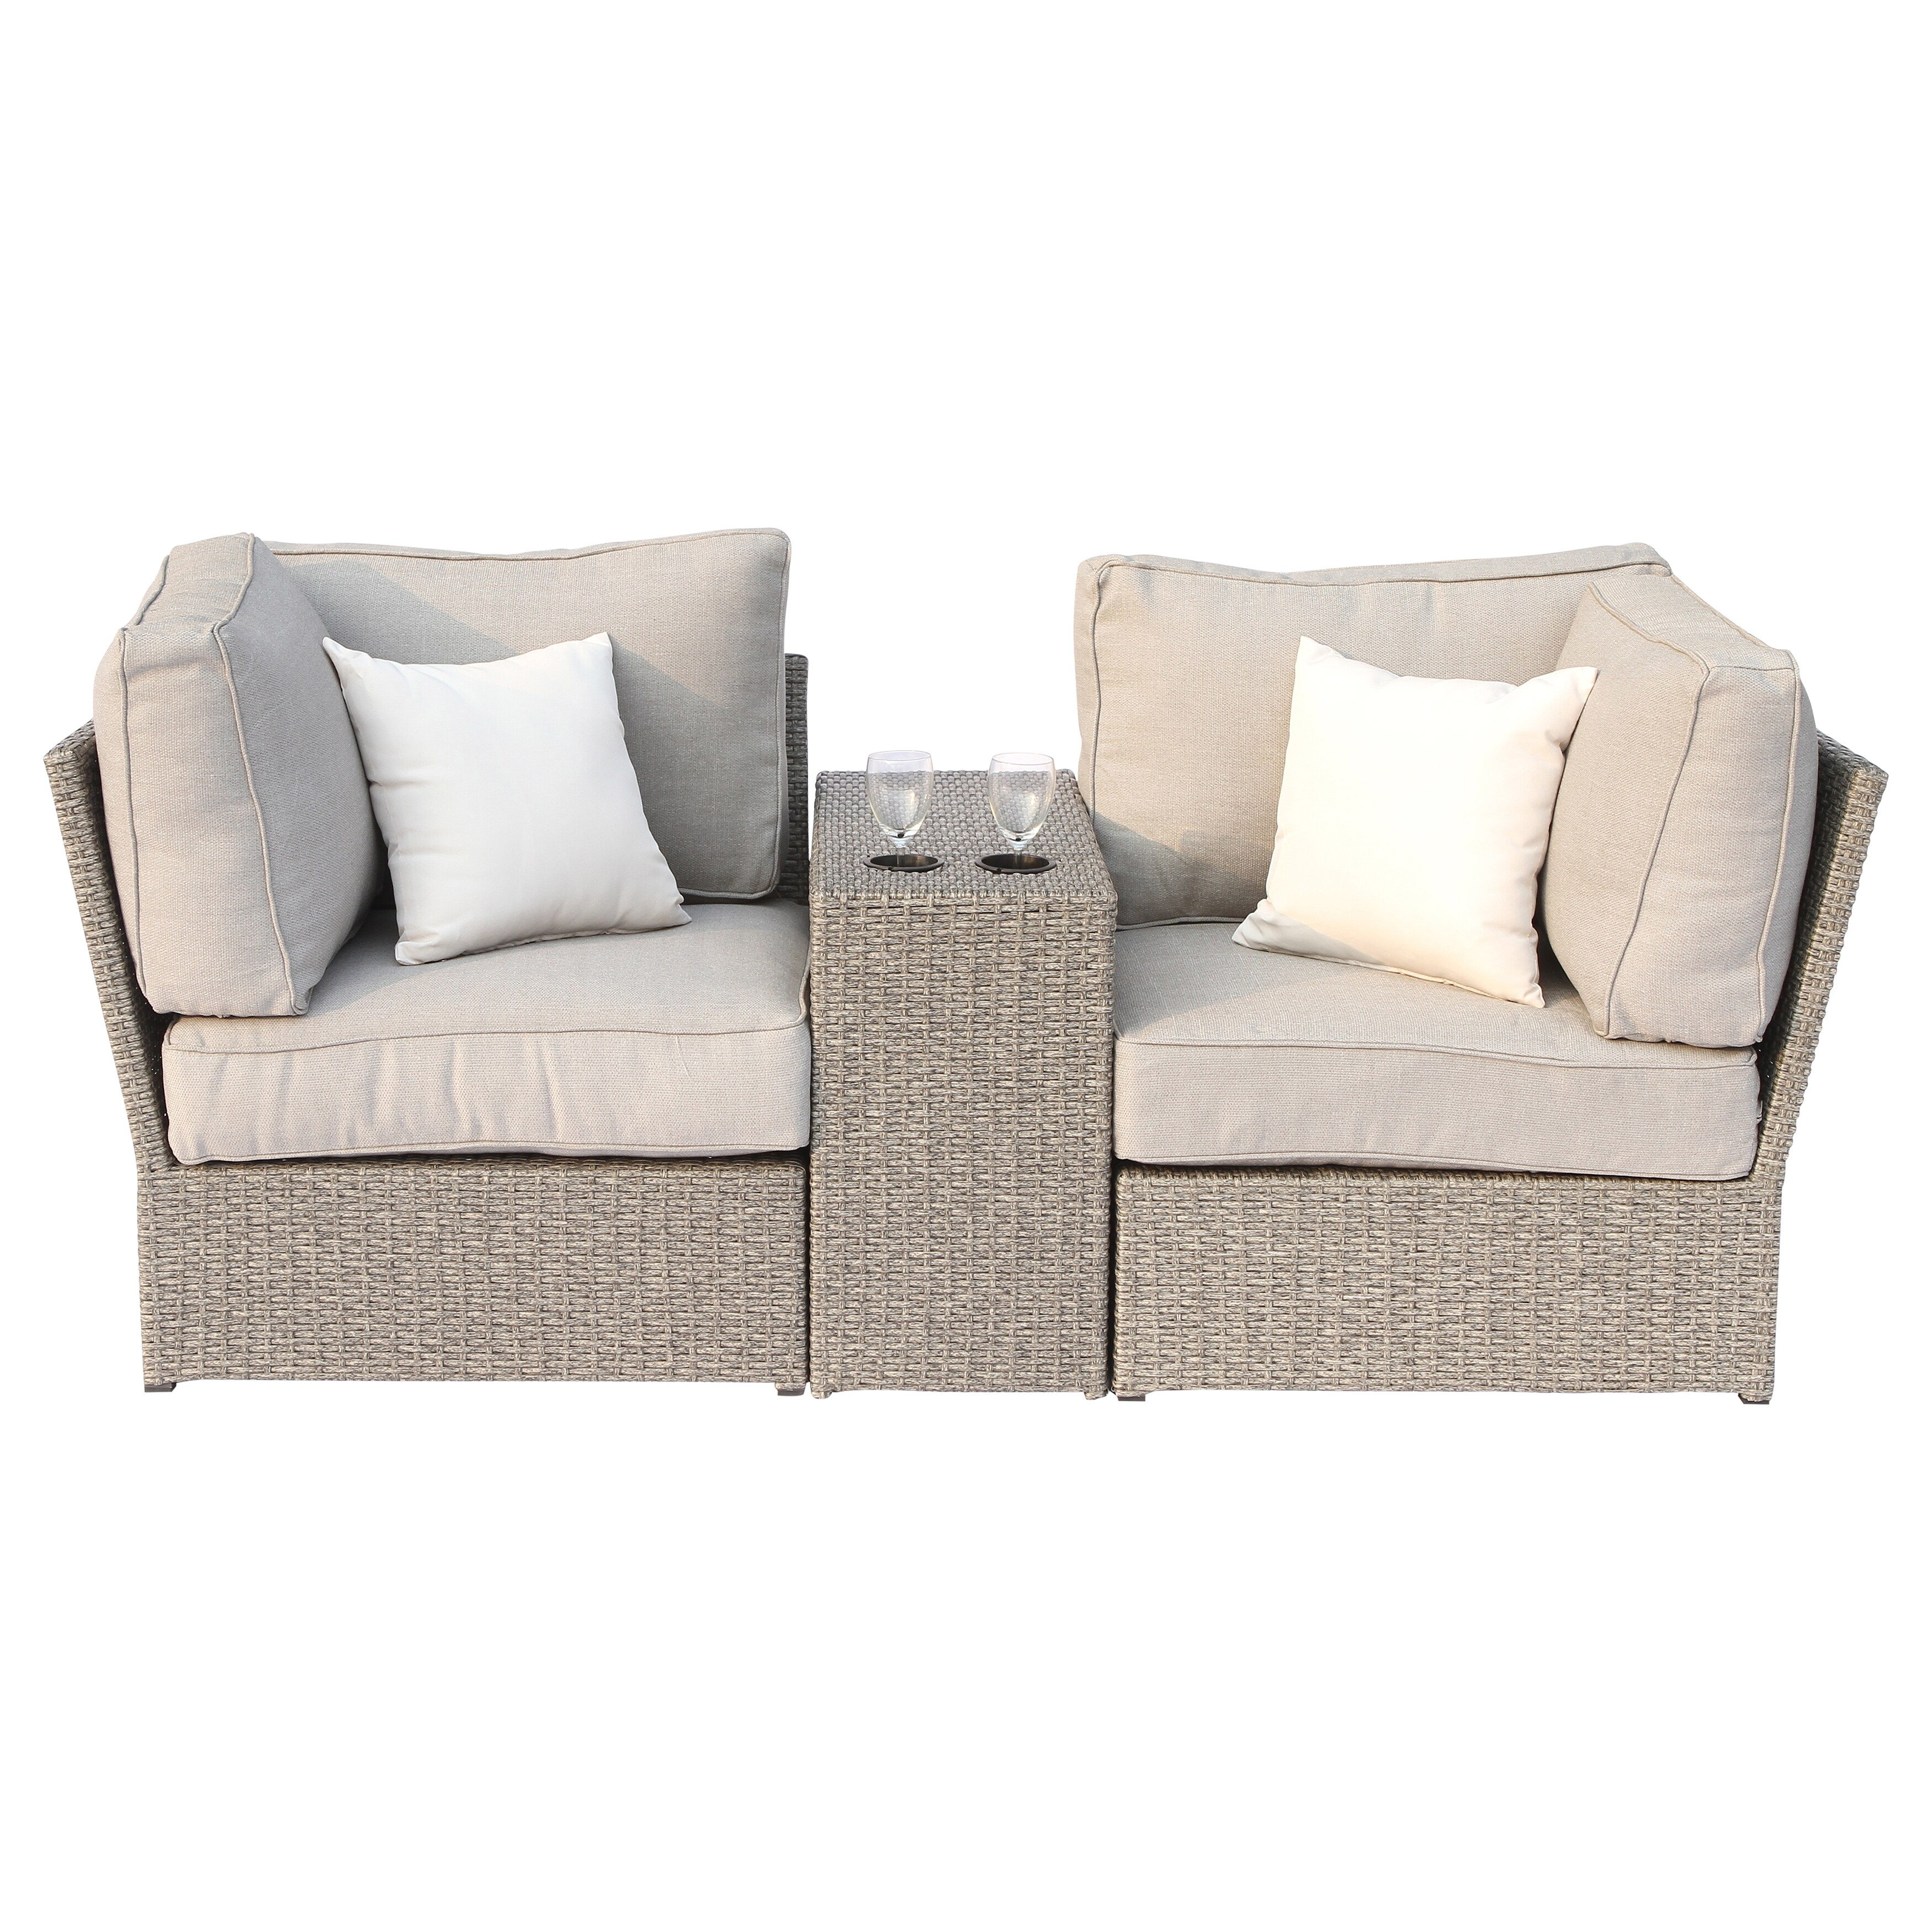 Shop Chelsea Grey Wicker Patio Loveseat Sofa By Living Source International    Free Shipping Today   Overstock.com   14506347